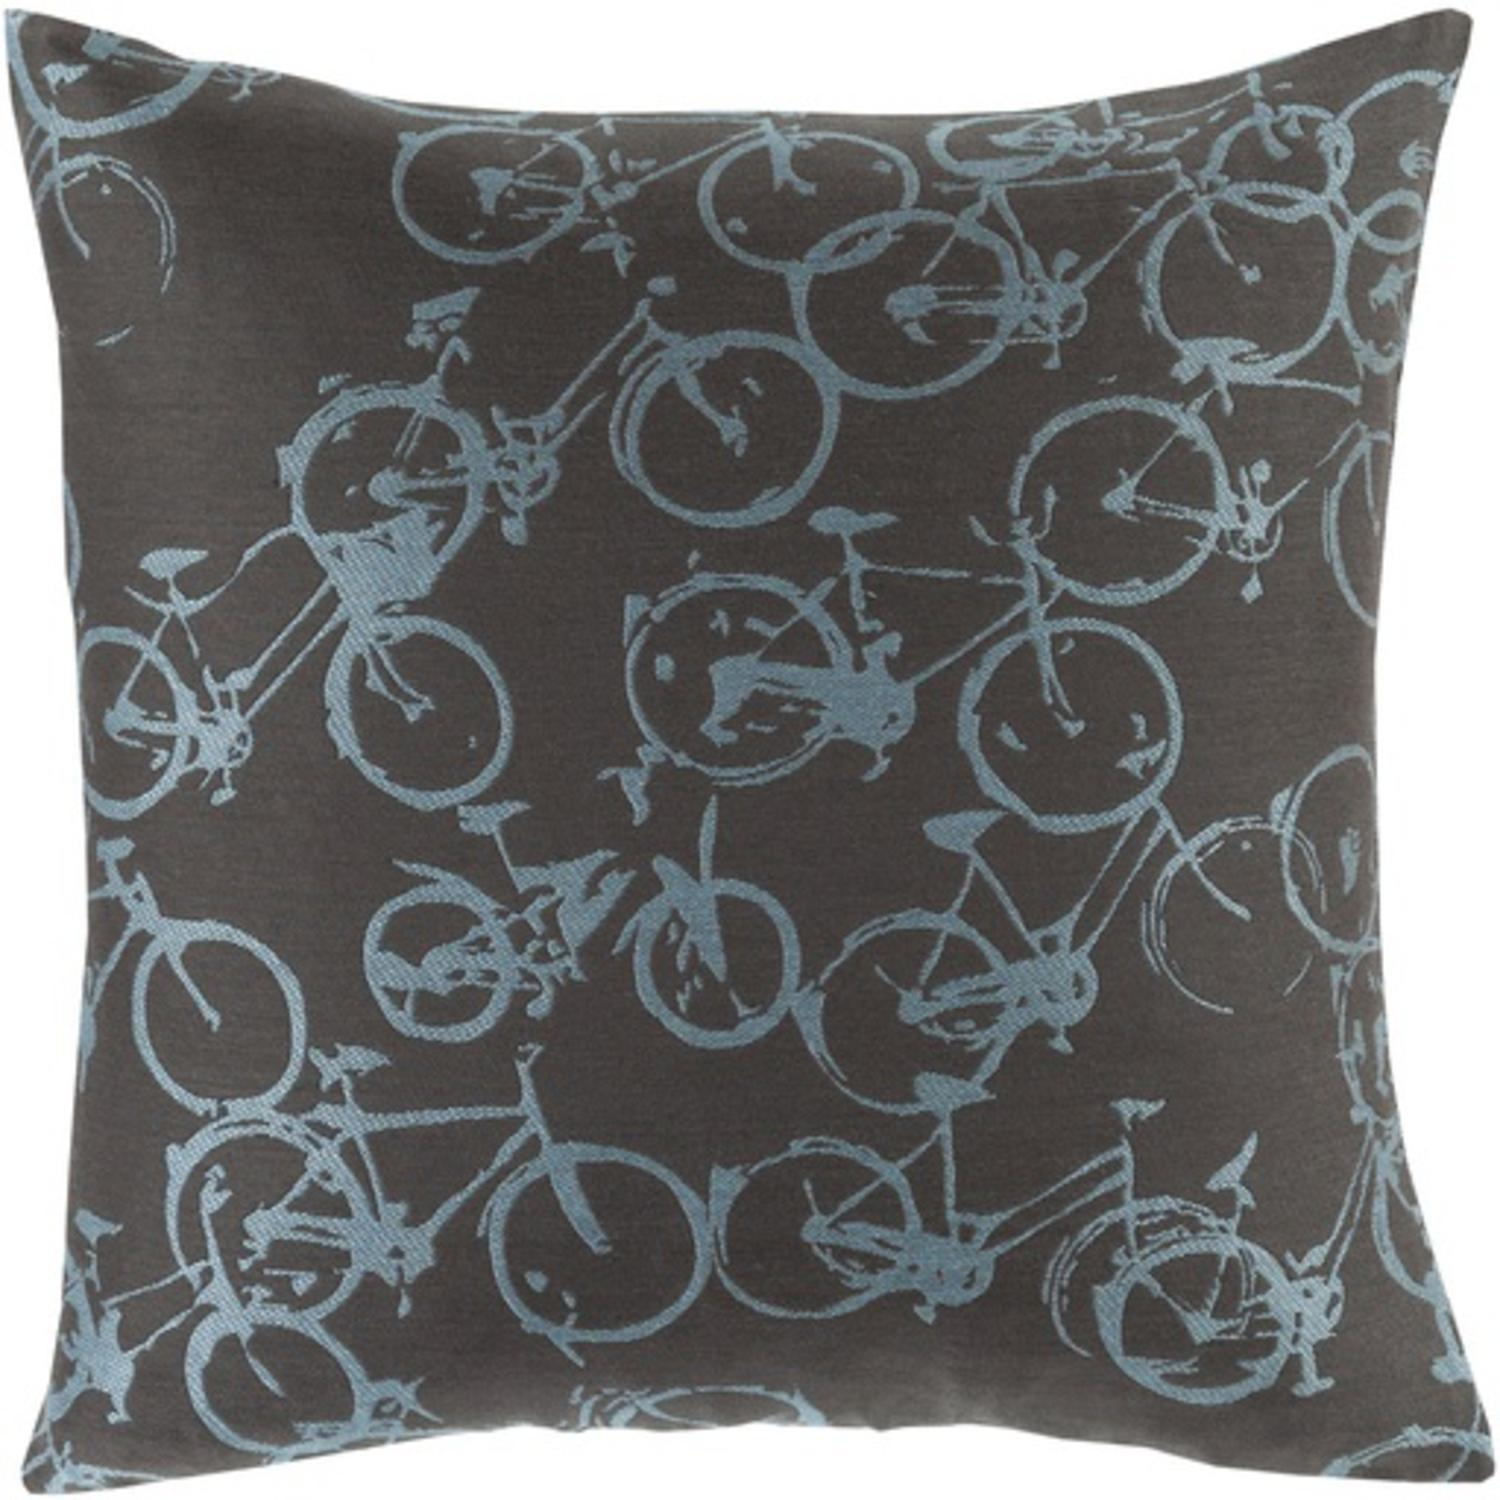 "18"" Crazed Cycling Ebony Black and Powder Blue Decorative Throw Pillow"